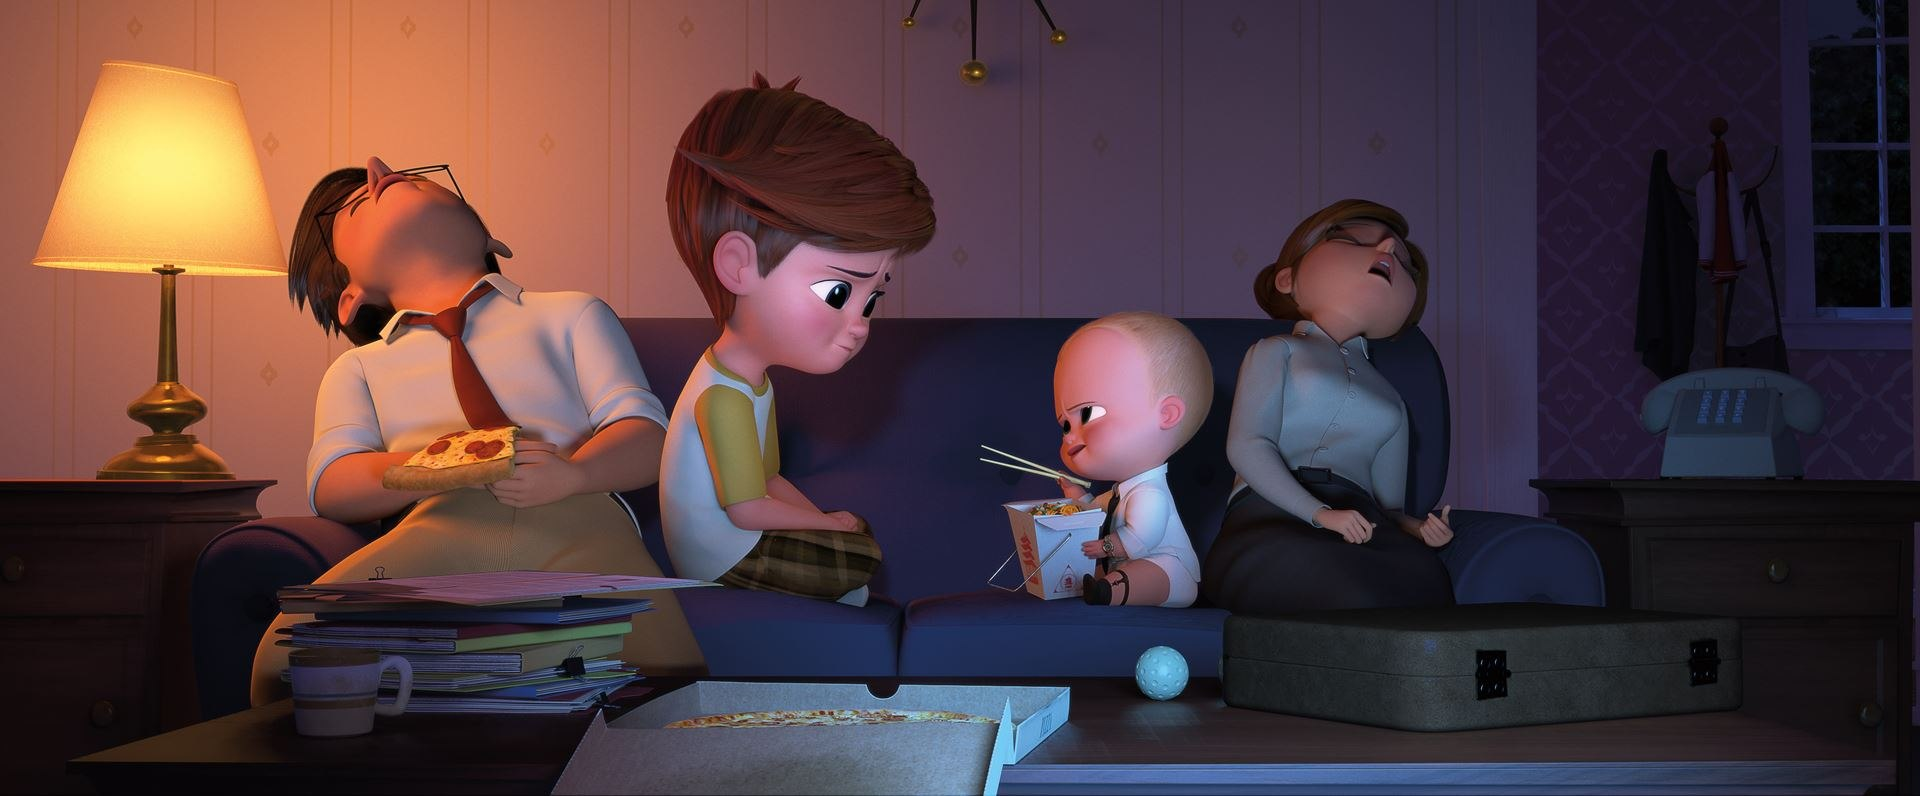 Featurette: DreamWorks Animation's 'The Boss Baby' Now on ...